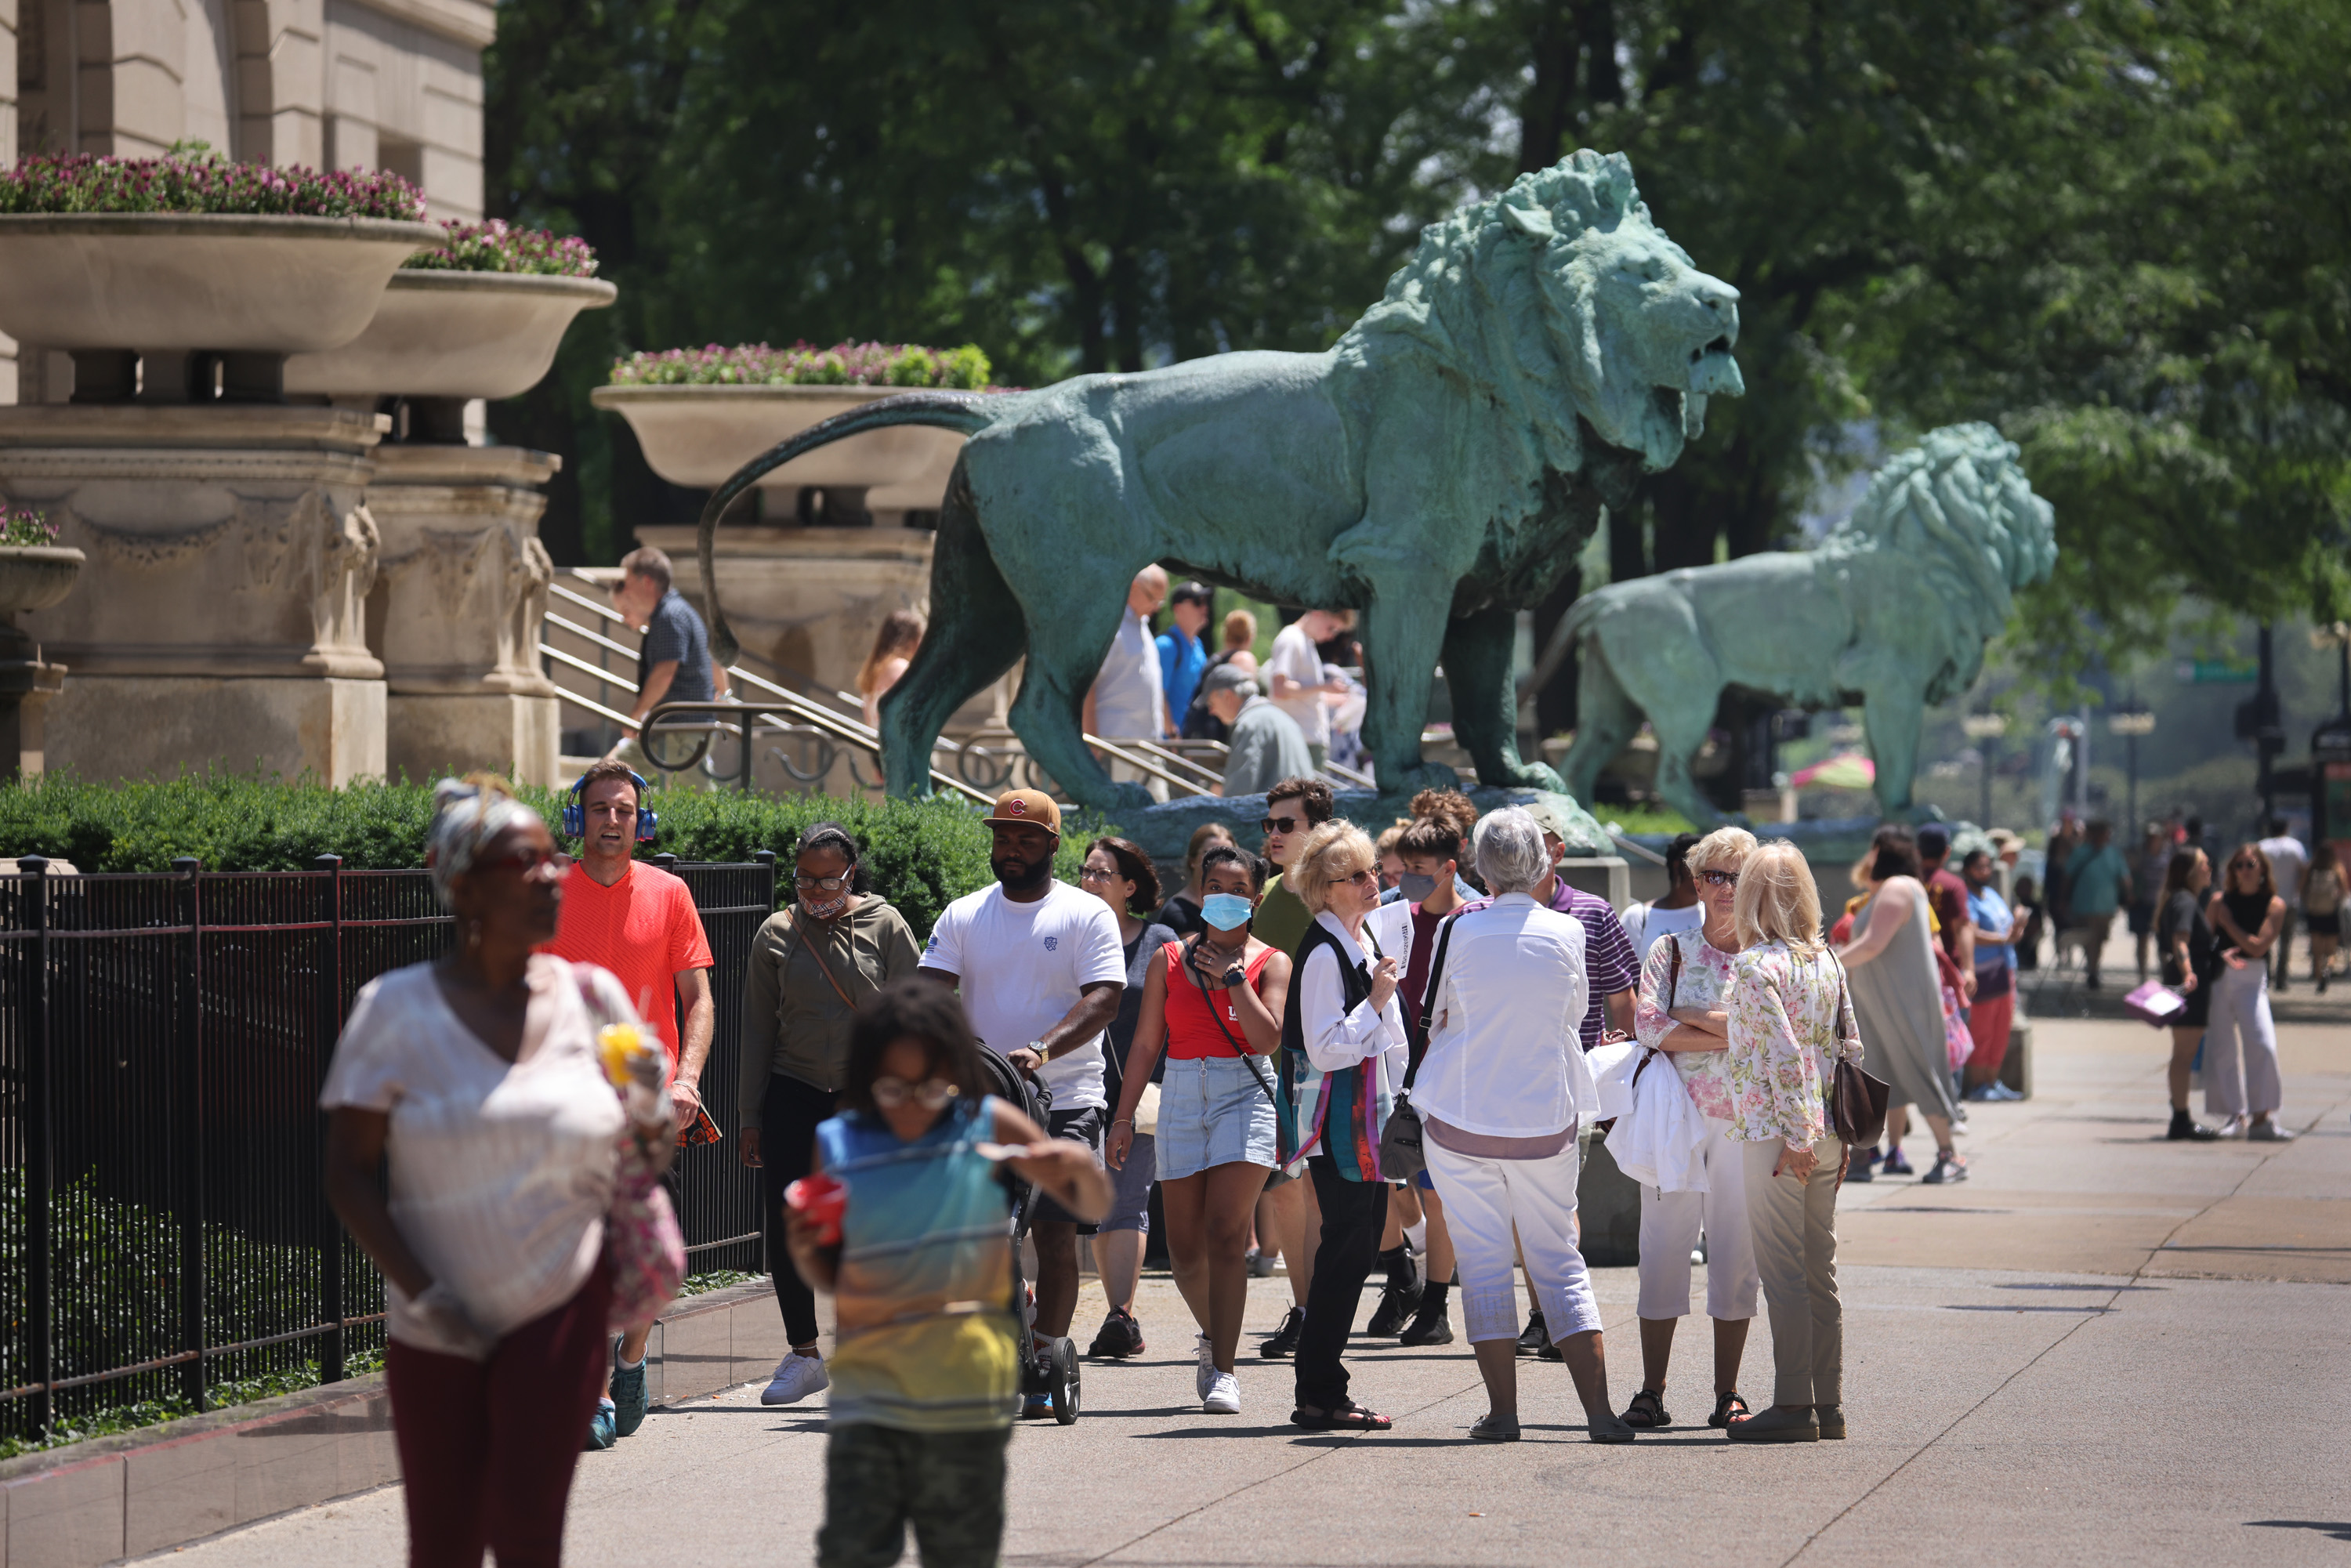 People congregate outside the Art Institute of Chicago in June.